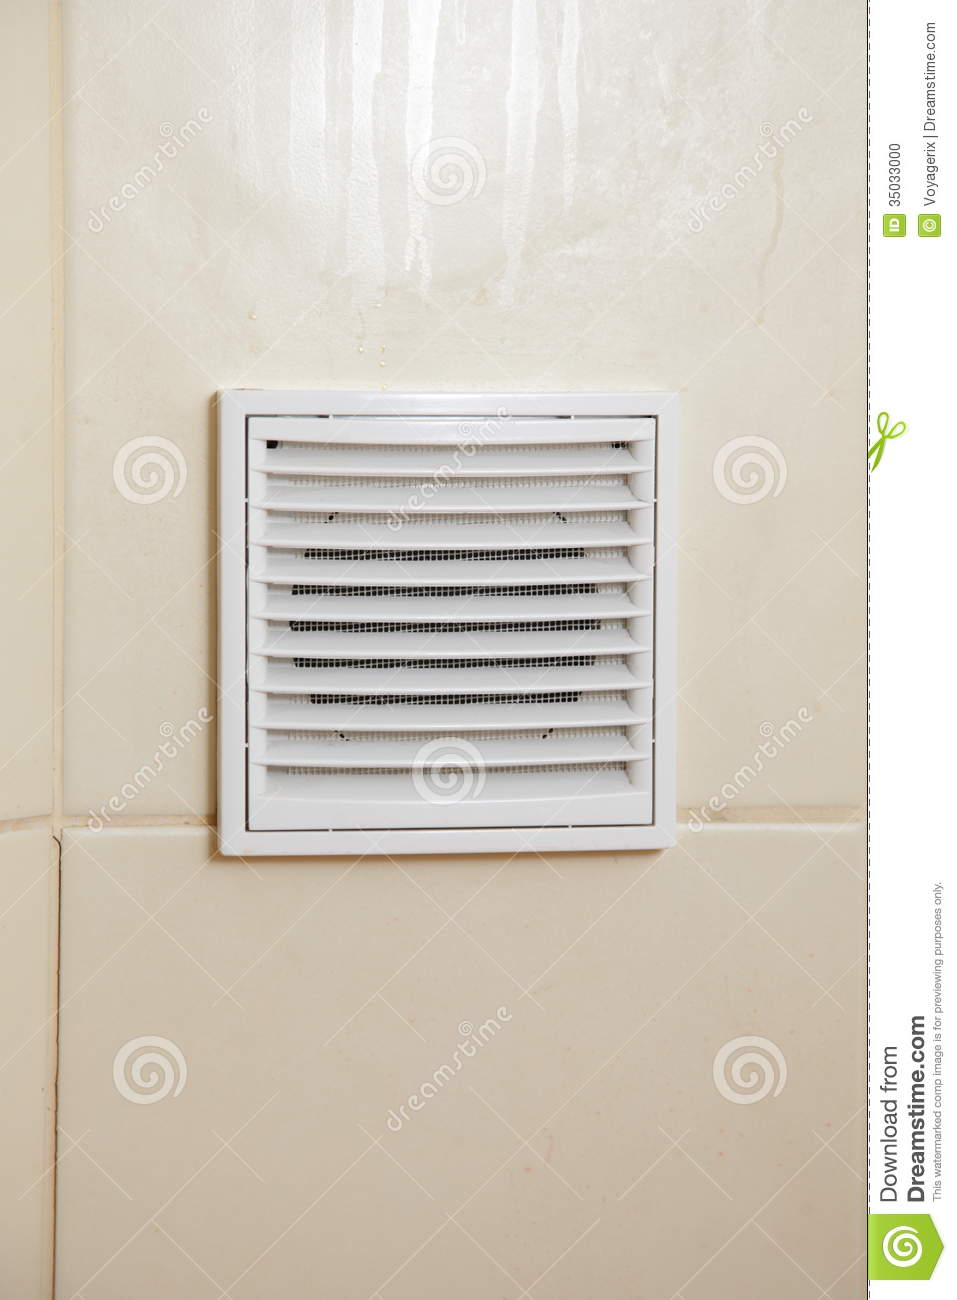 Vent White Bathroom Ventilation Grille Stock Photo.